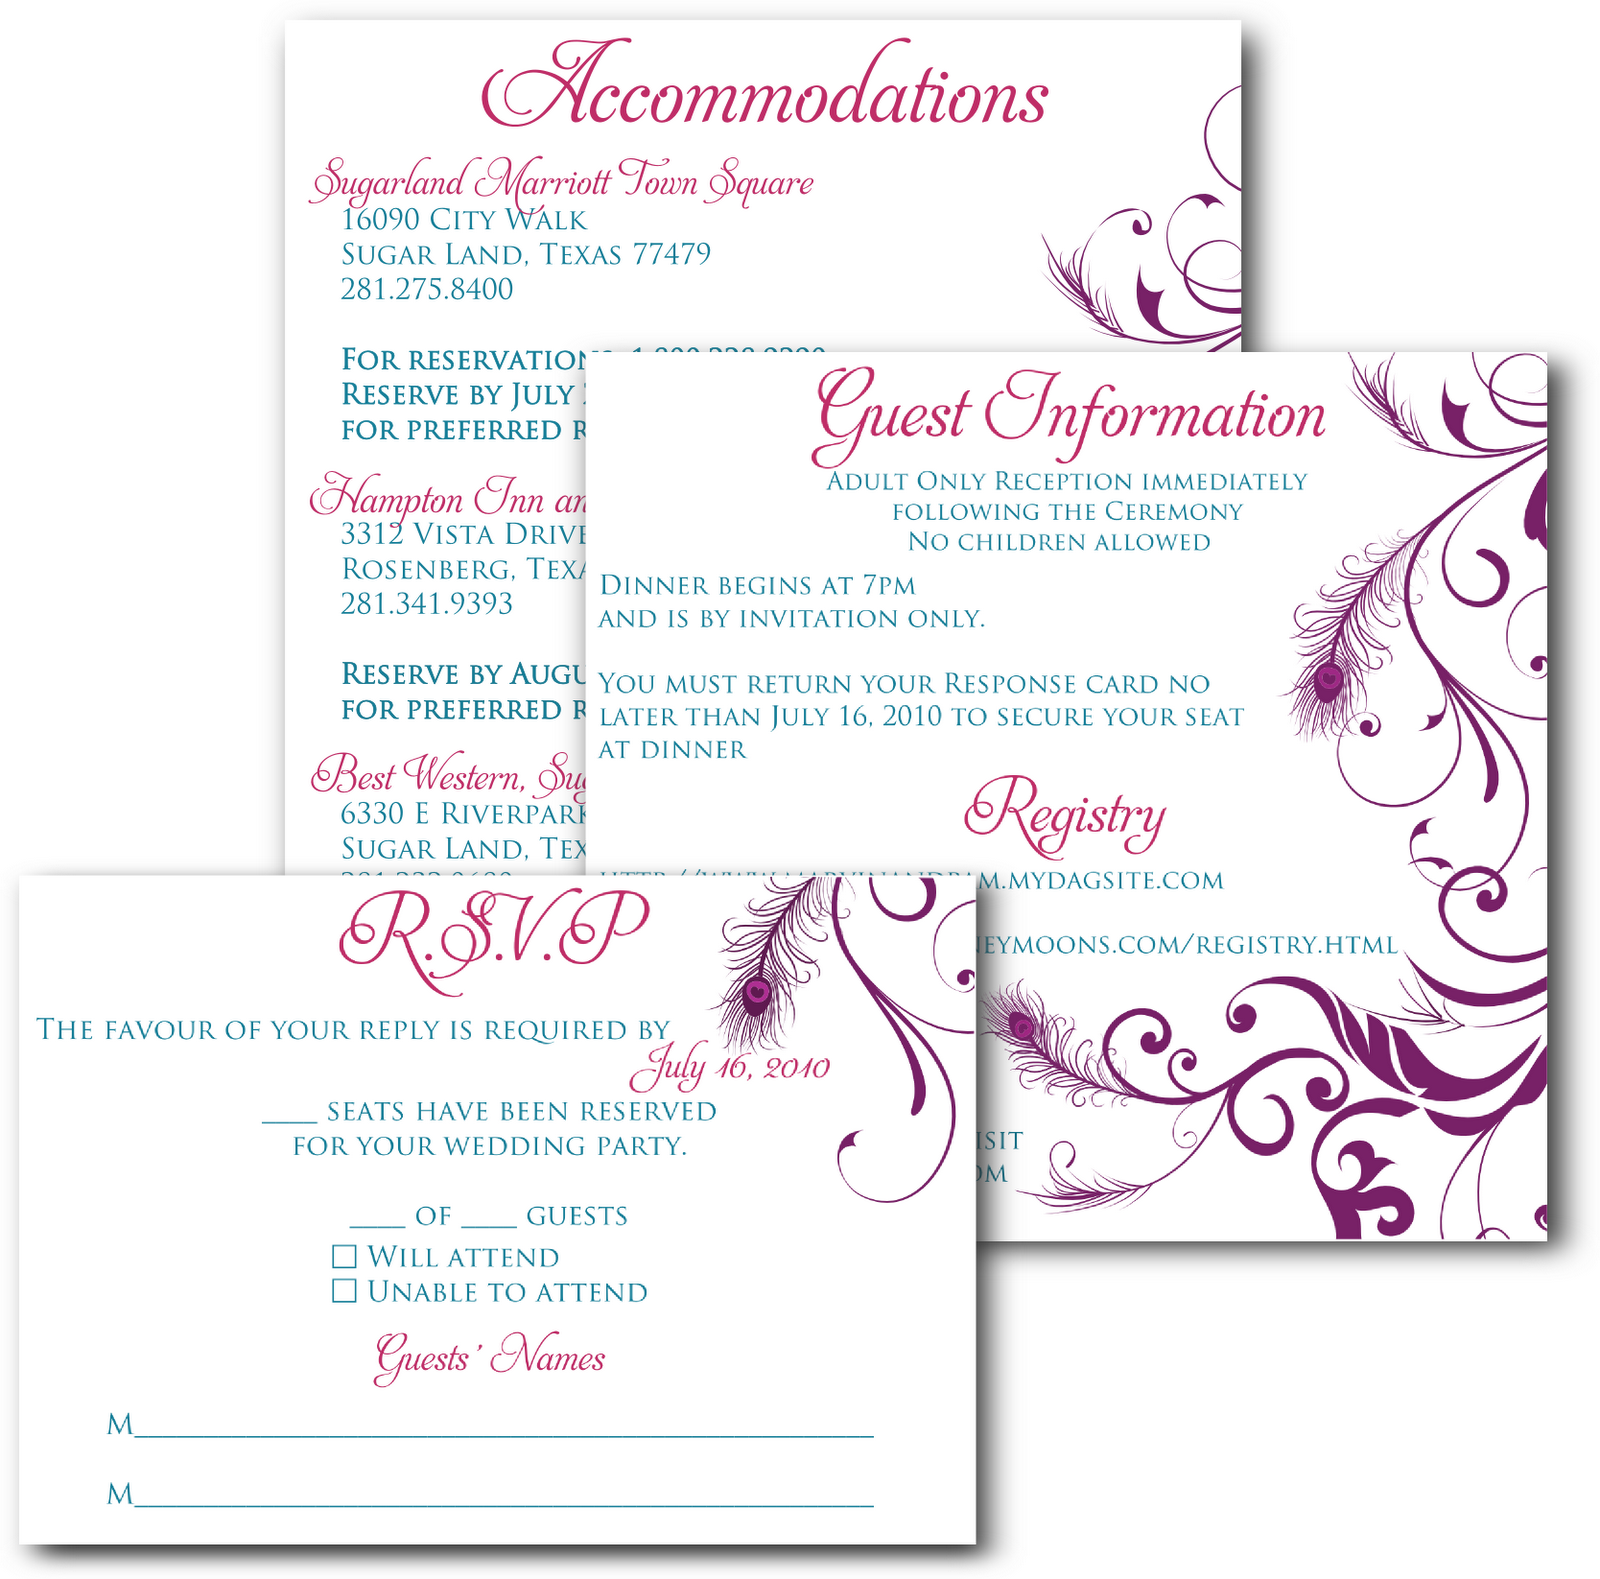 Wedding Invitations And Inserts Google Search